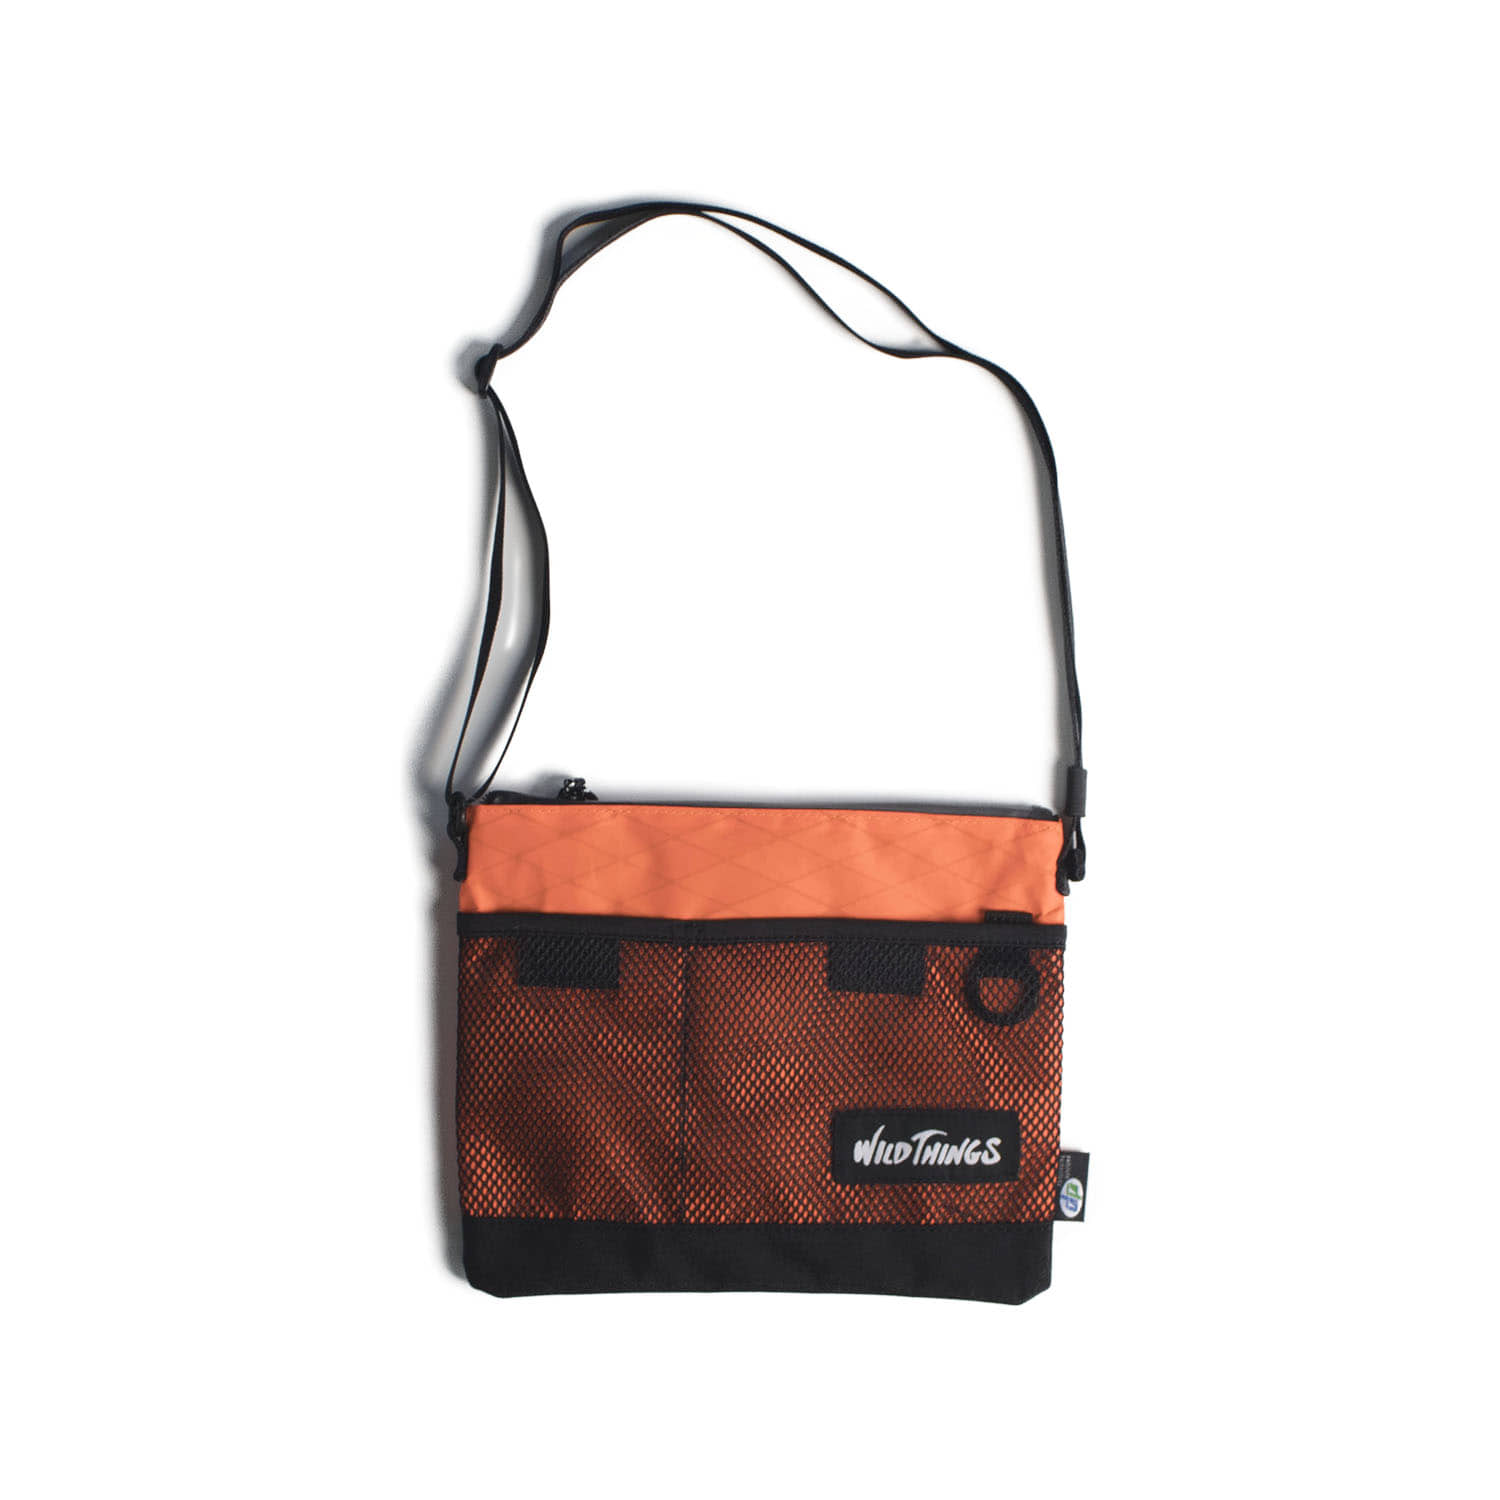 Wildthings X-PAC Sacoche (Orange)